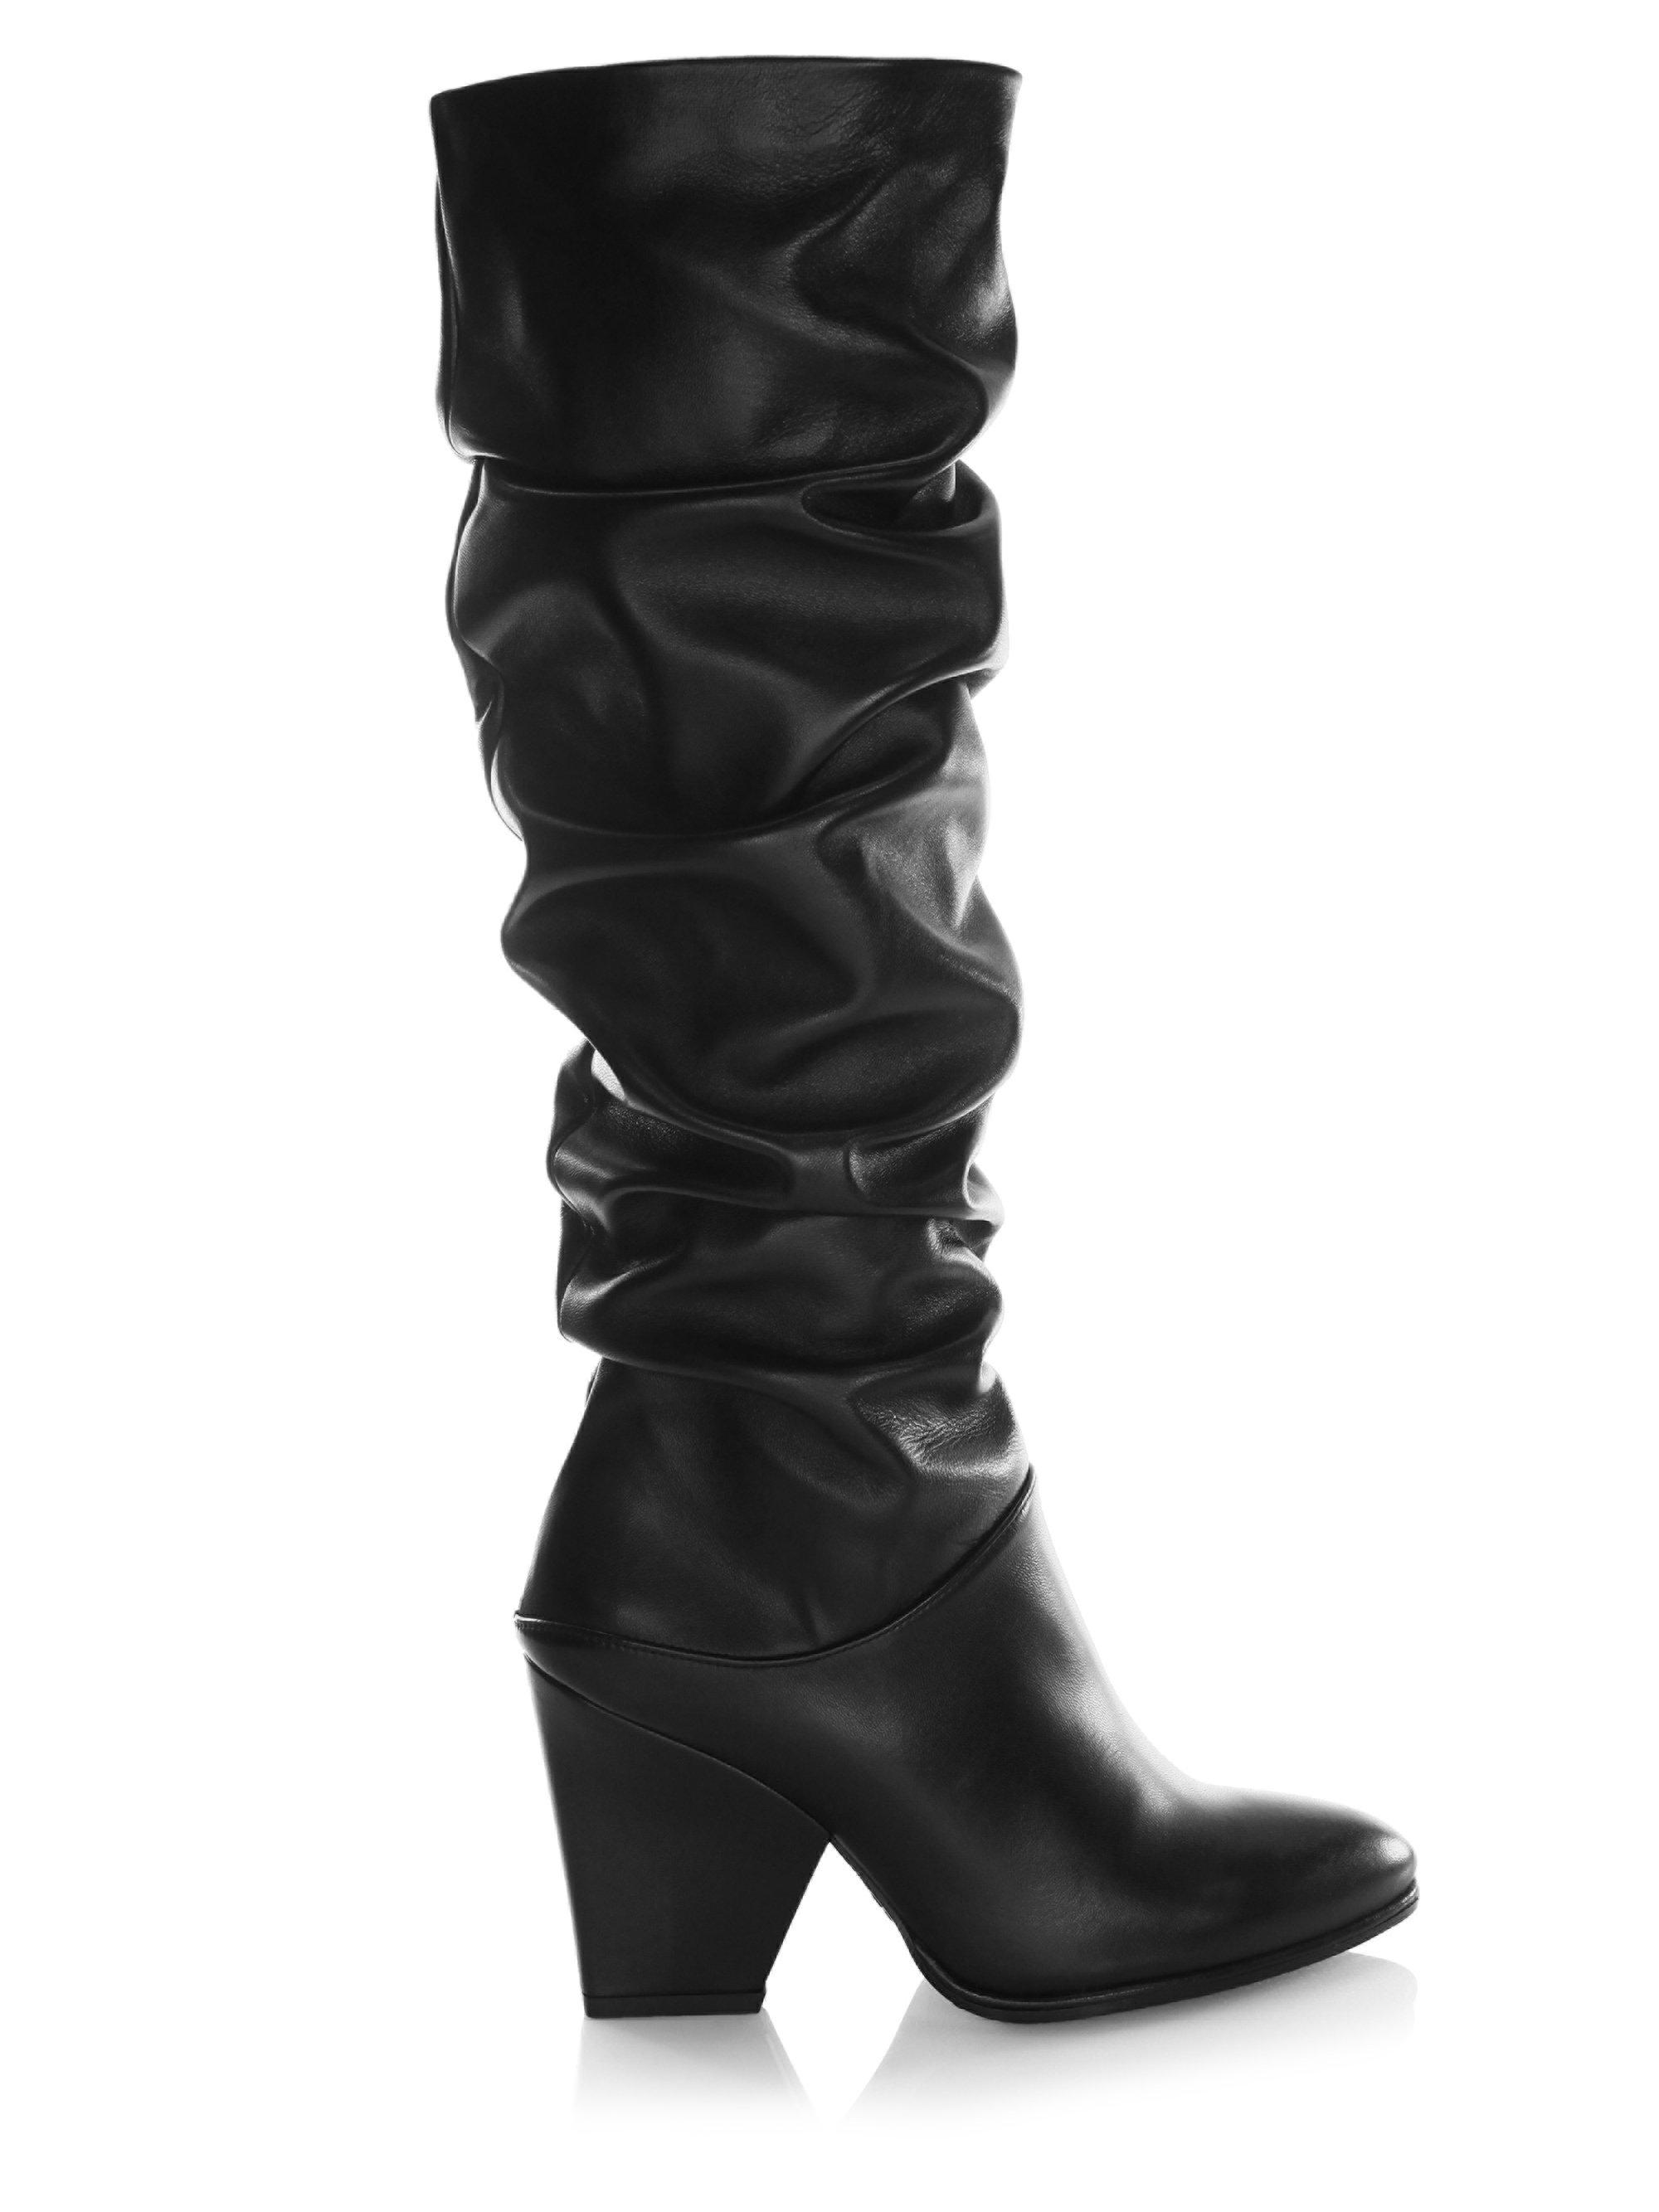 f62d39f538a Stuart Weitzman Women s Smashing Leather Scrunched Leather Tall ...